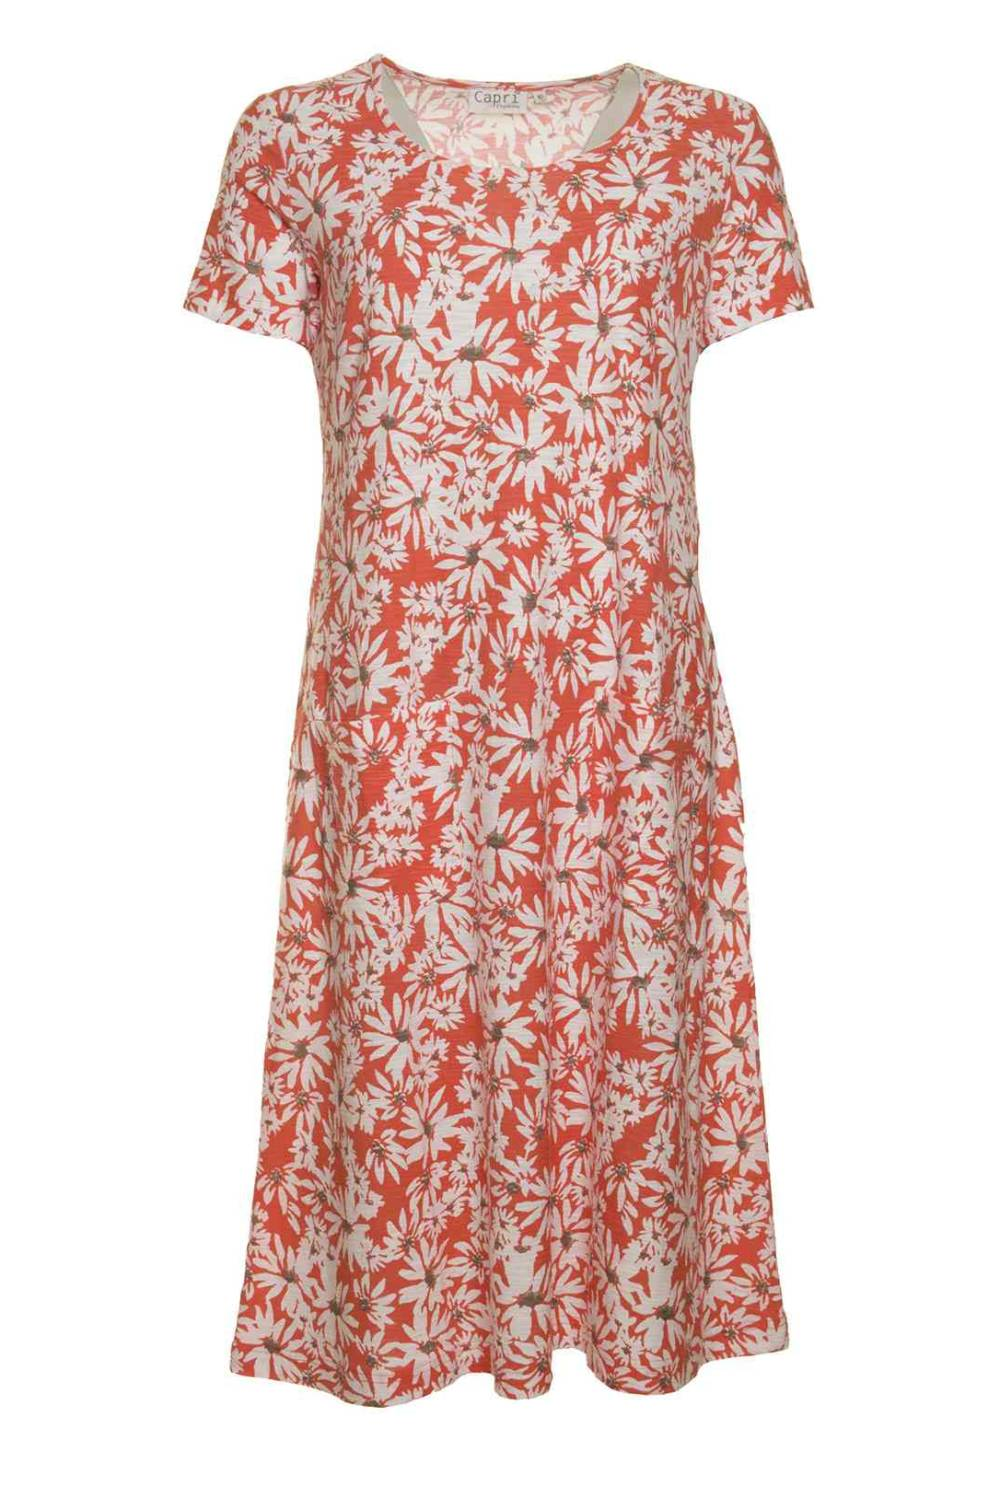 Dress DSY-9025S Capri Katie Kerr Women's Clothing